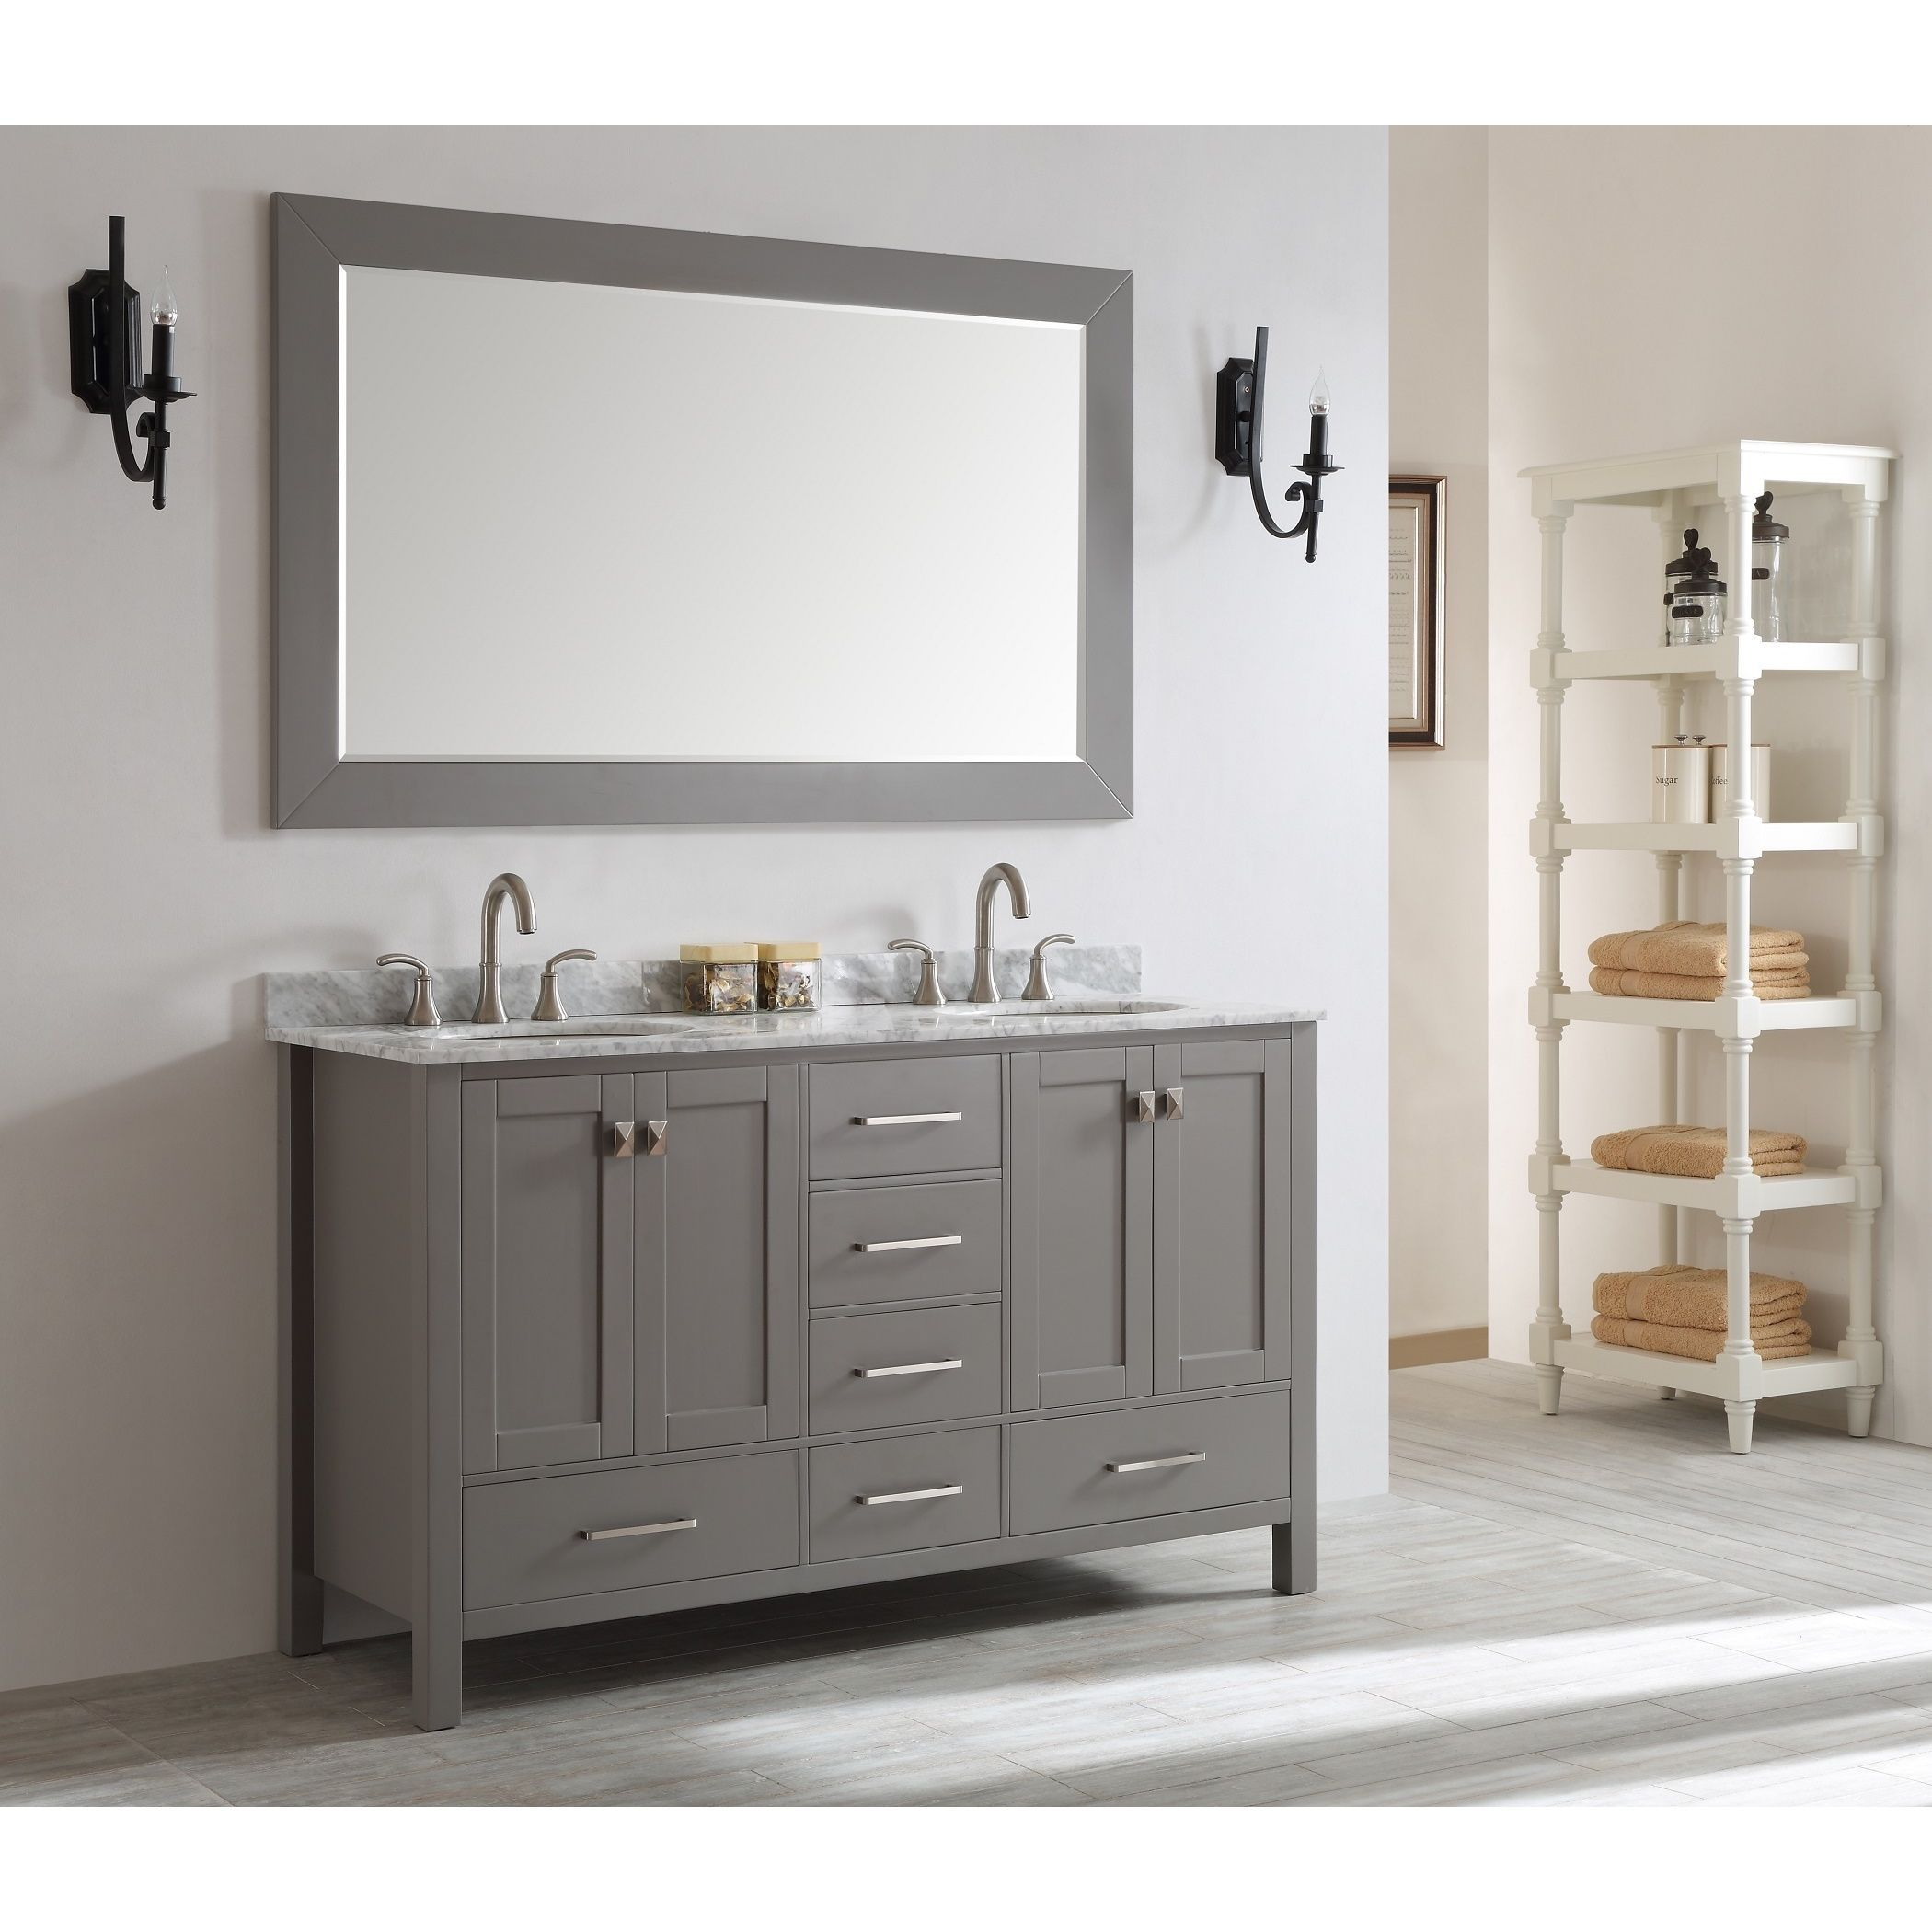 Eviva Aberdeen 60 Inch Transitional Grey Bathroom Vanity With White Carrera  Countertop And Double Square Sinks (Eviva Aberdeen 60 Grey Bathroom Vanity),  ...